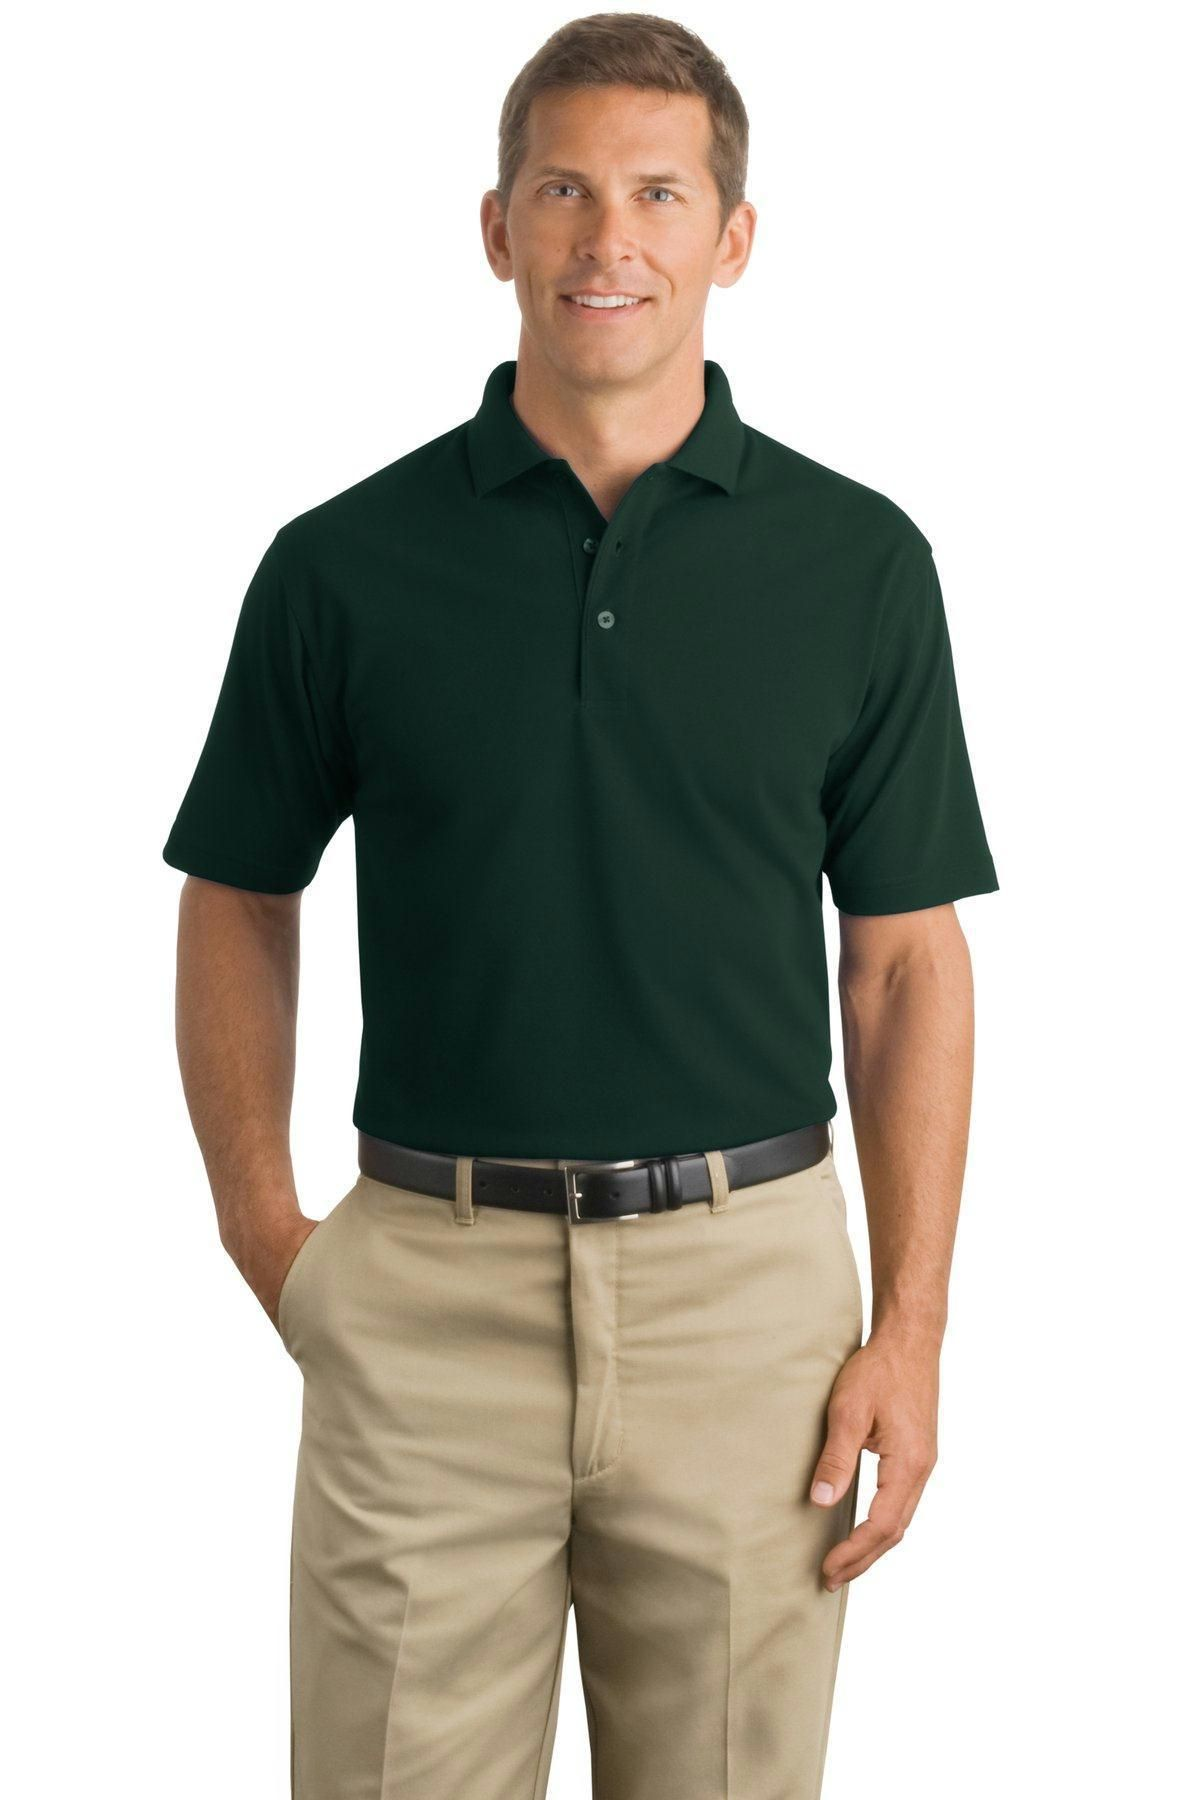 STAIN RESISTANT POCKET SIDE VENTS S-6XL PIQUE POLO SHIRT MENS INDUSTRIAL WORK